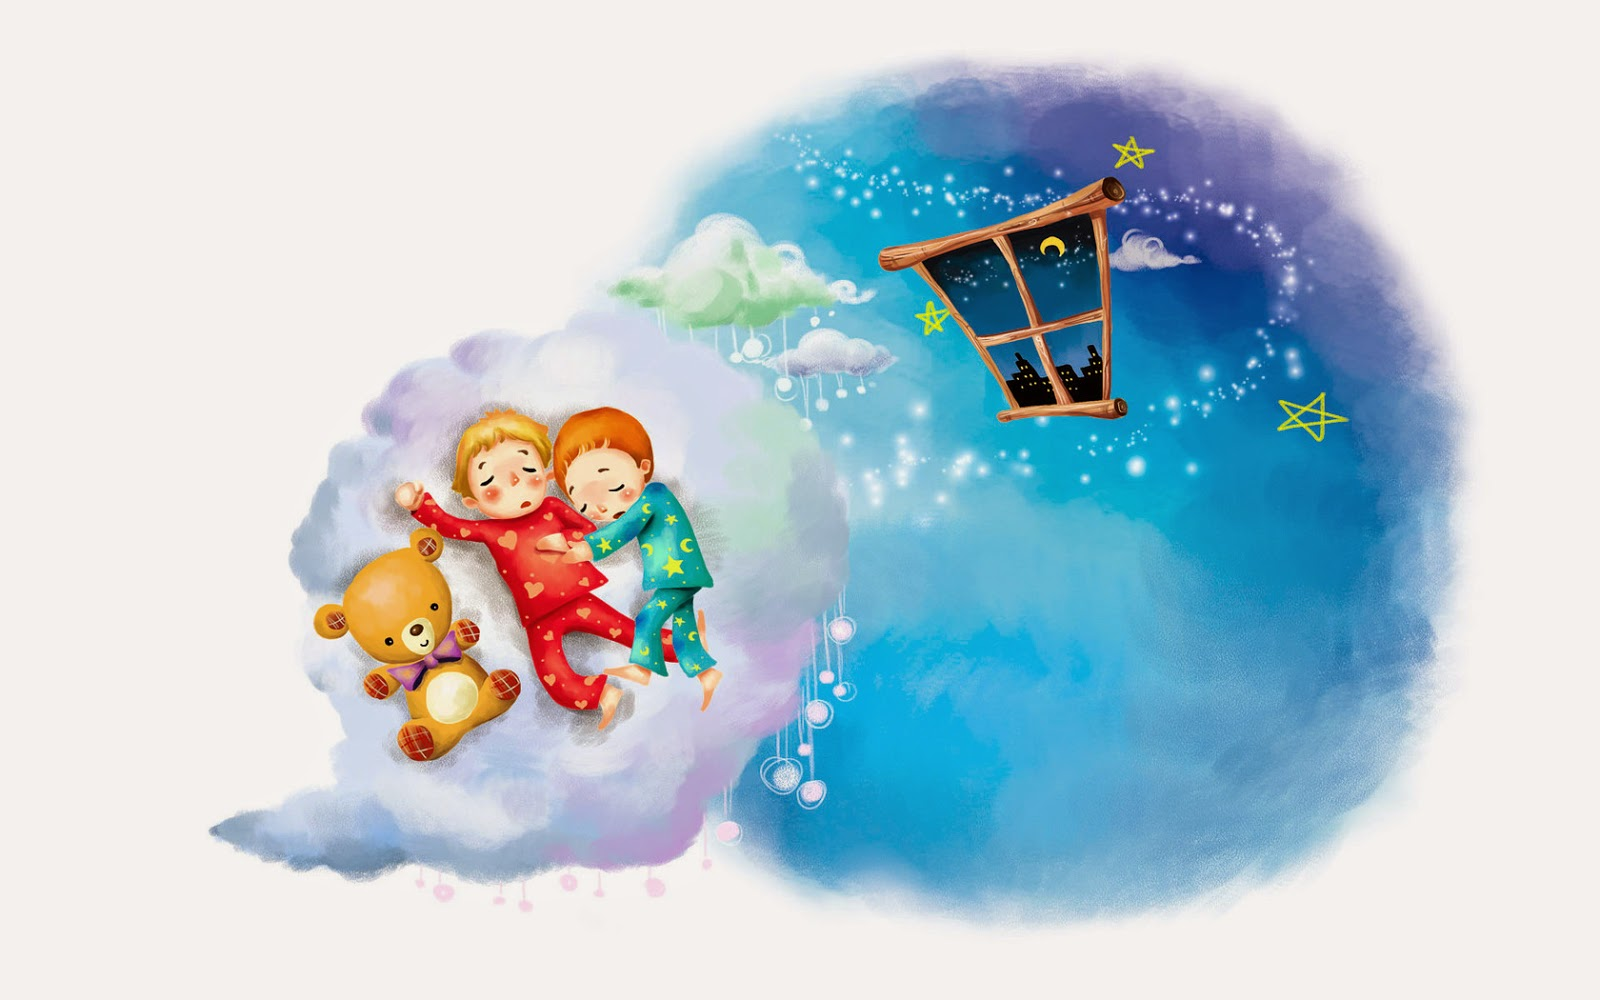 teddy-bear-sweet-dreams-with-kids-cartoon-1680x1050.jpg